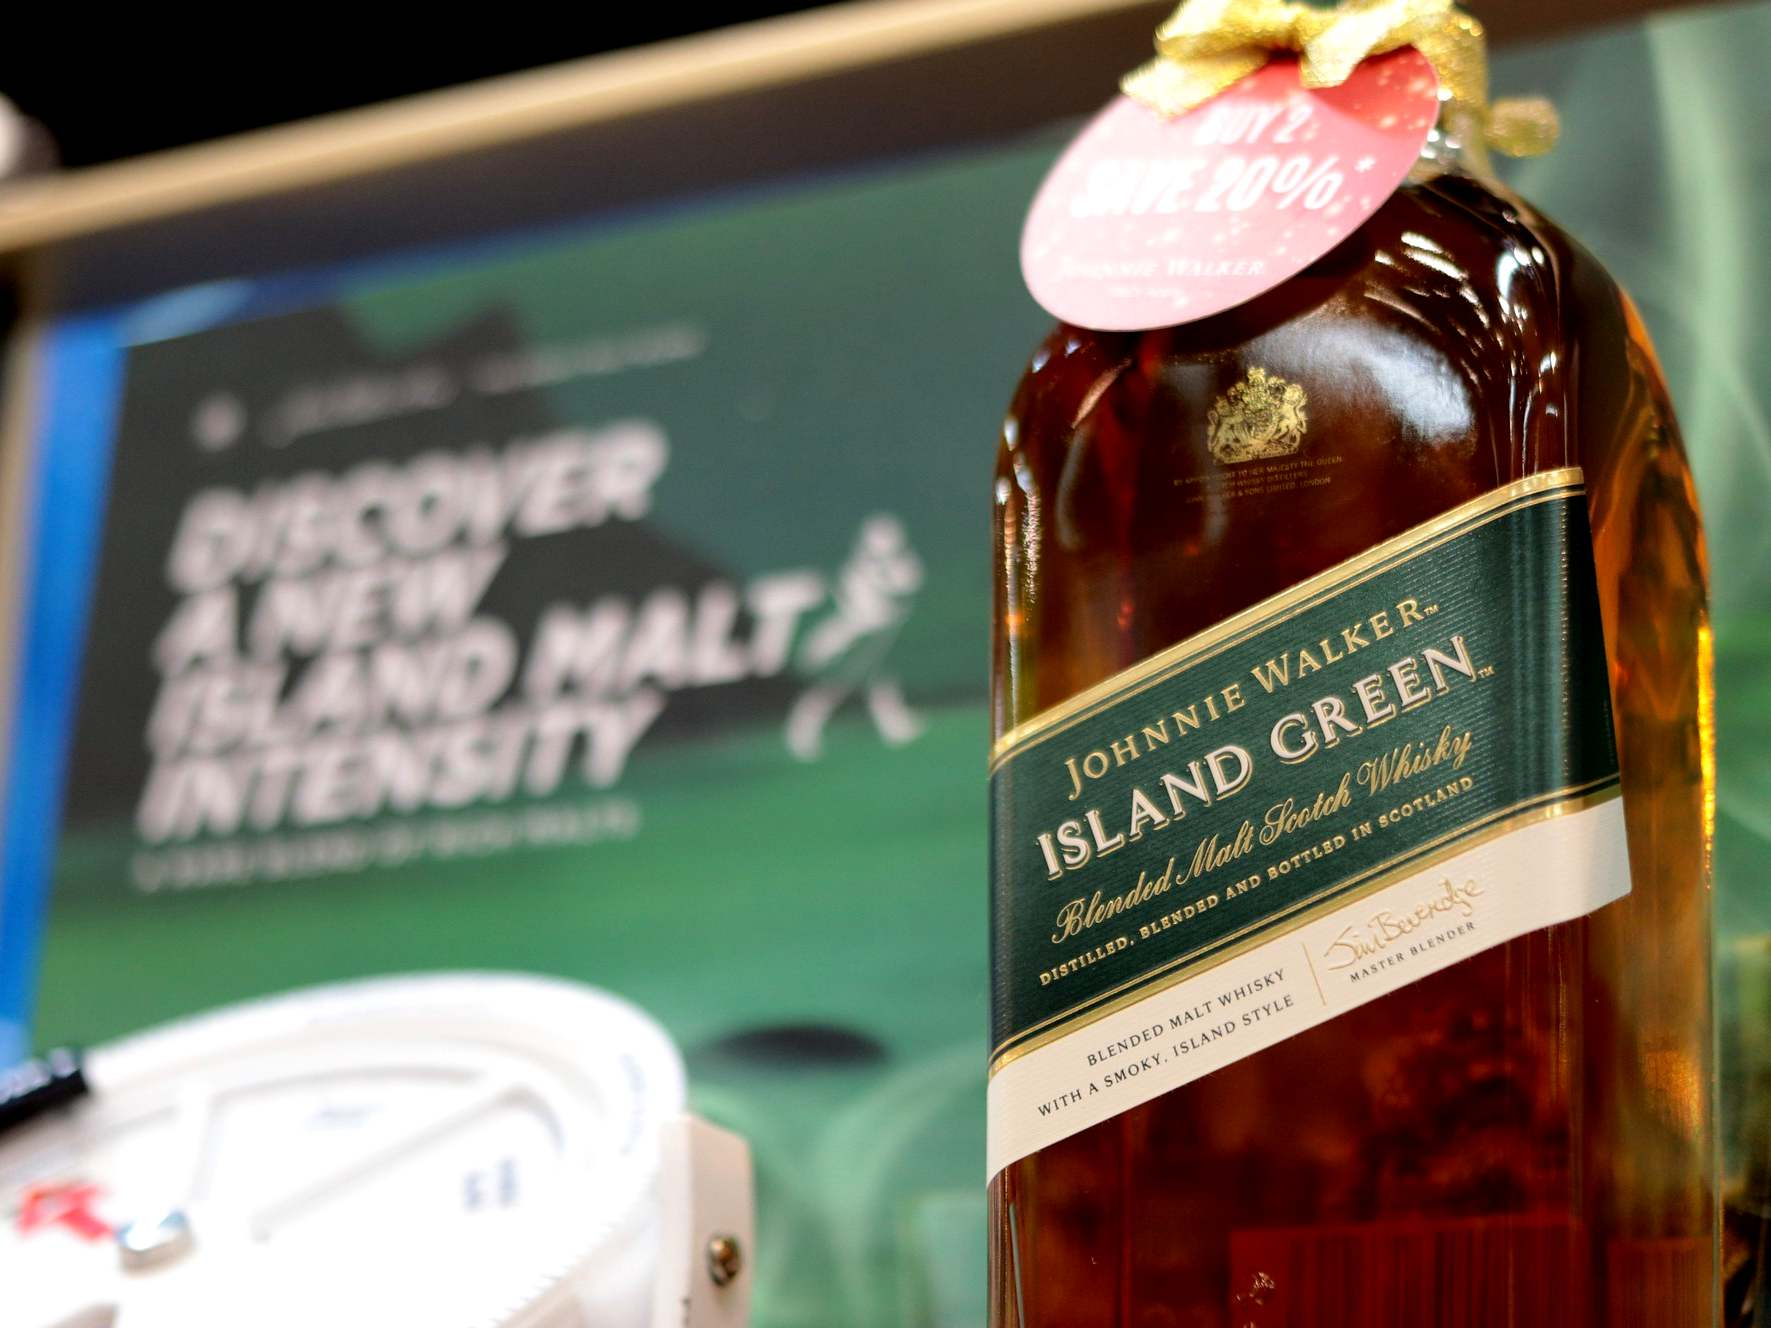 Johnnie Walker Island Green BIG - Johnnie Walker Island Green 苏格兰混合麦芽威士忌飘香至大马